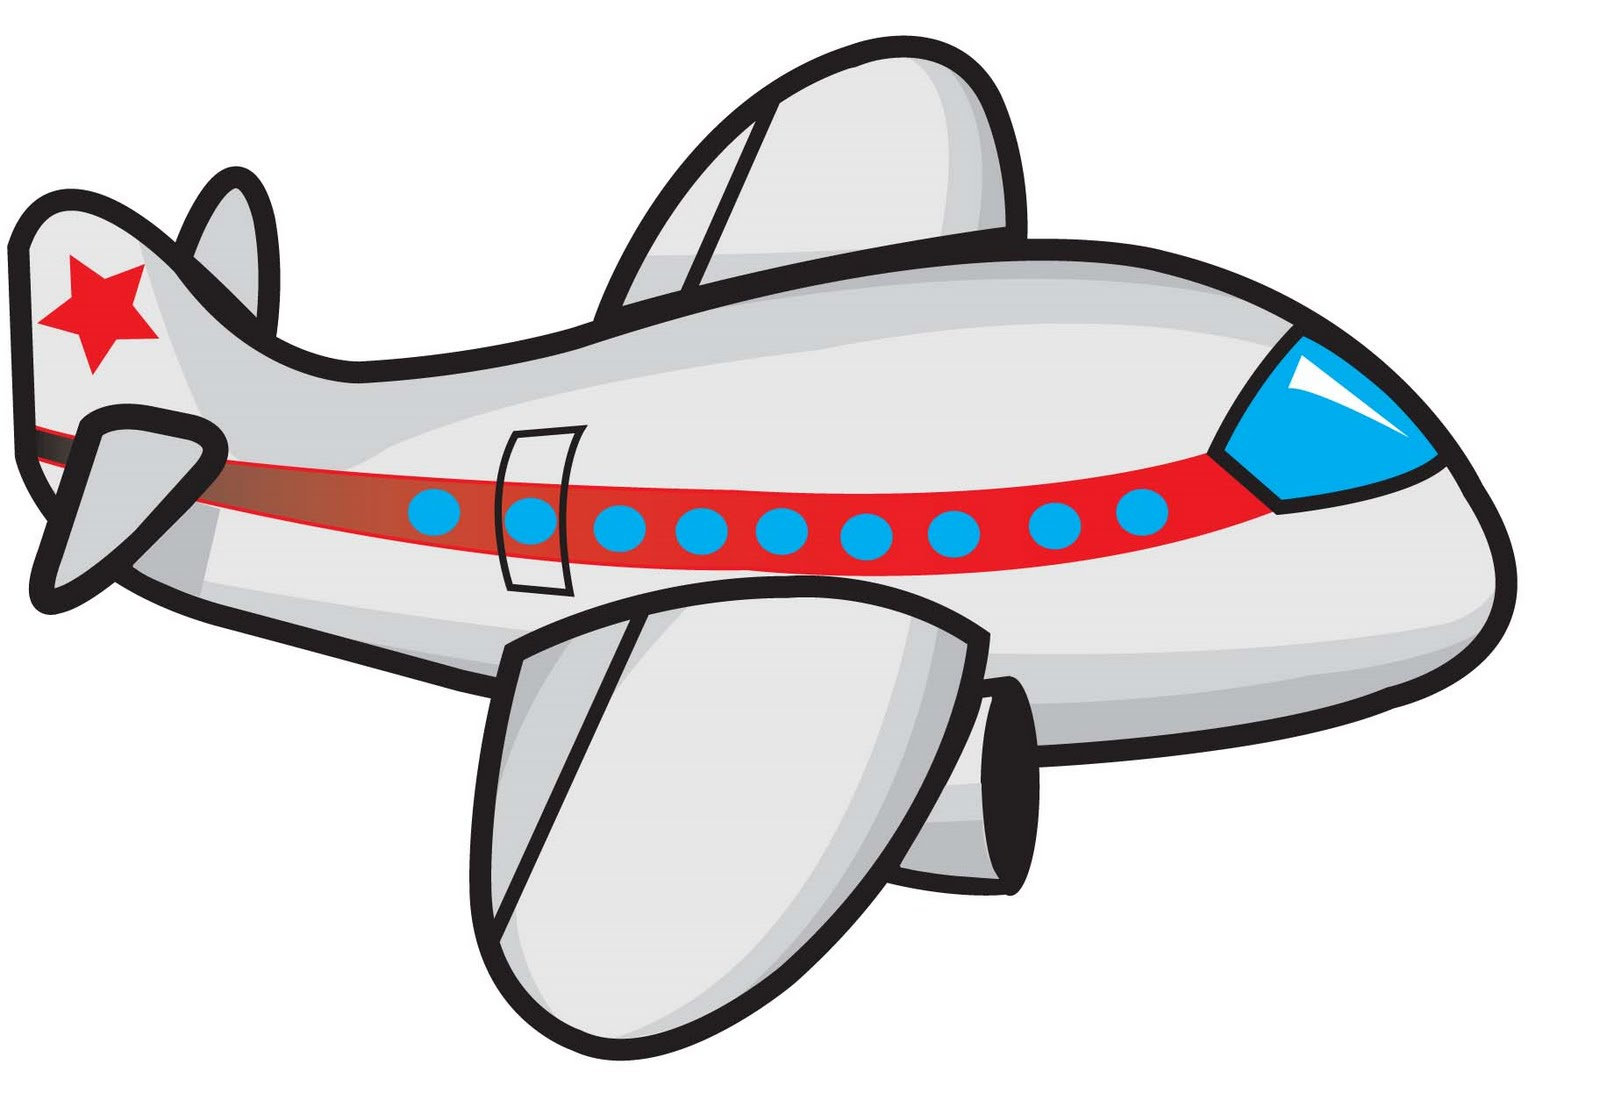 cartoon airplane clipart - photo #5